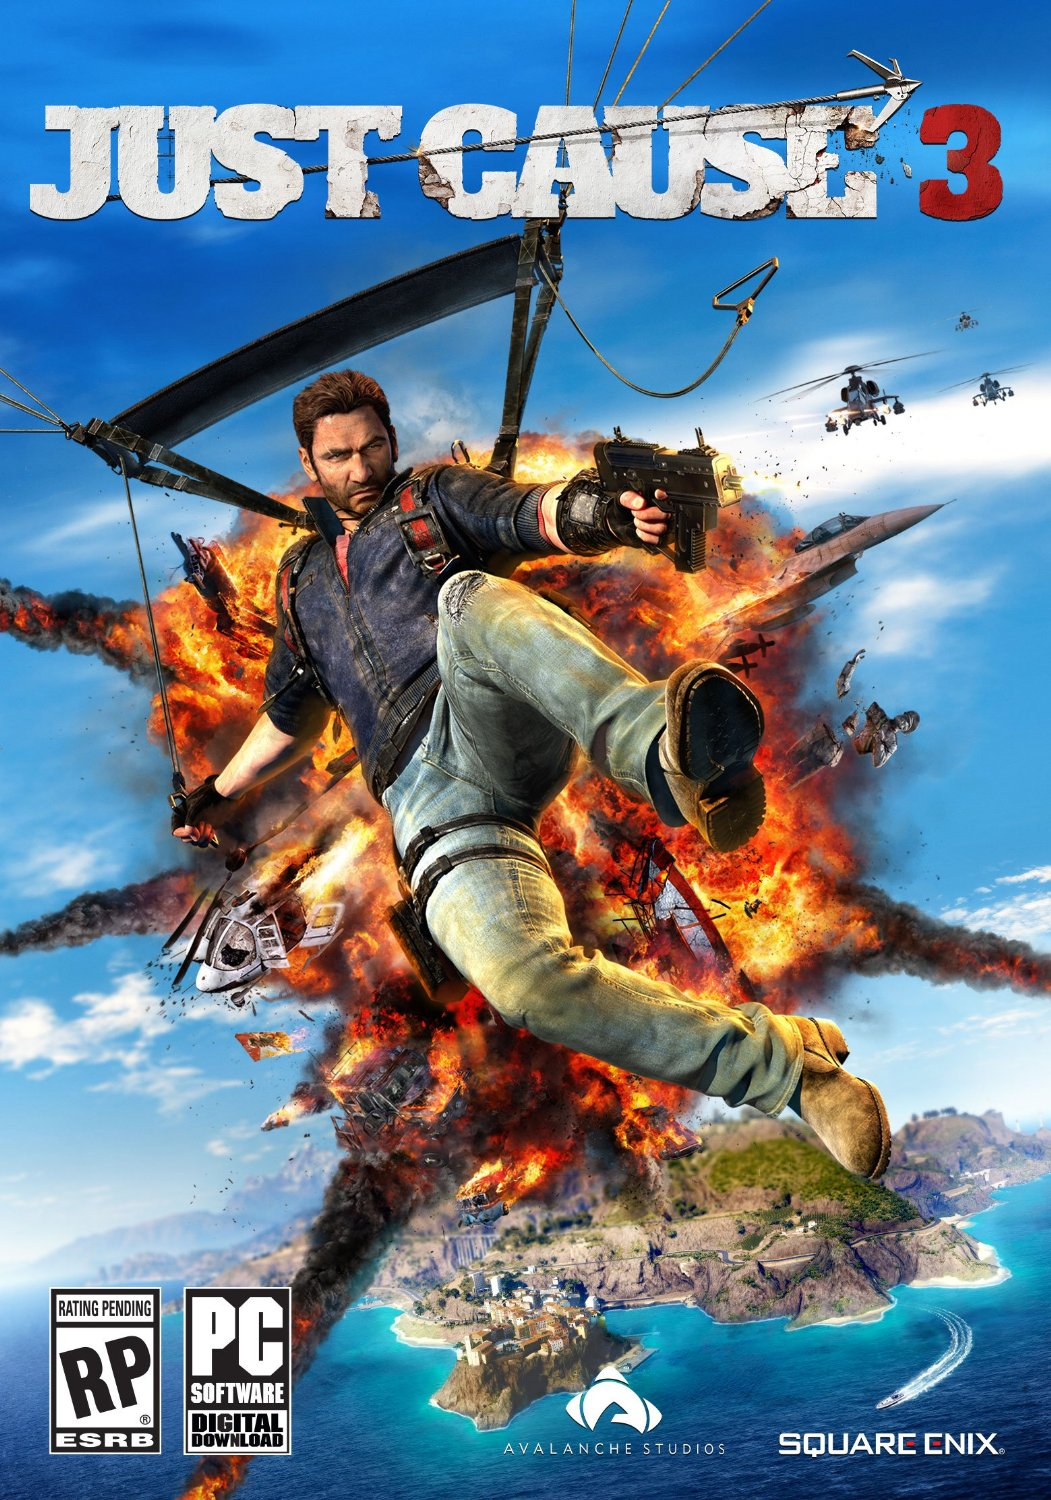 Poster for Just Cause 3